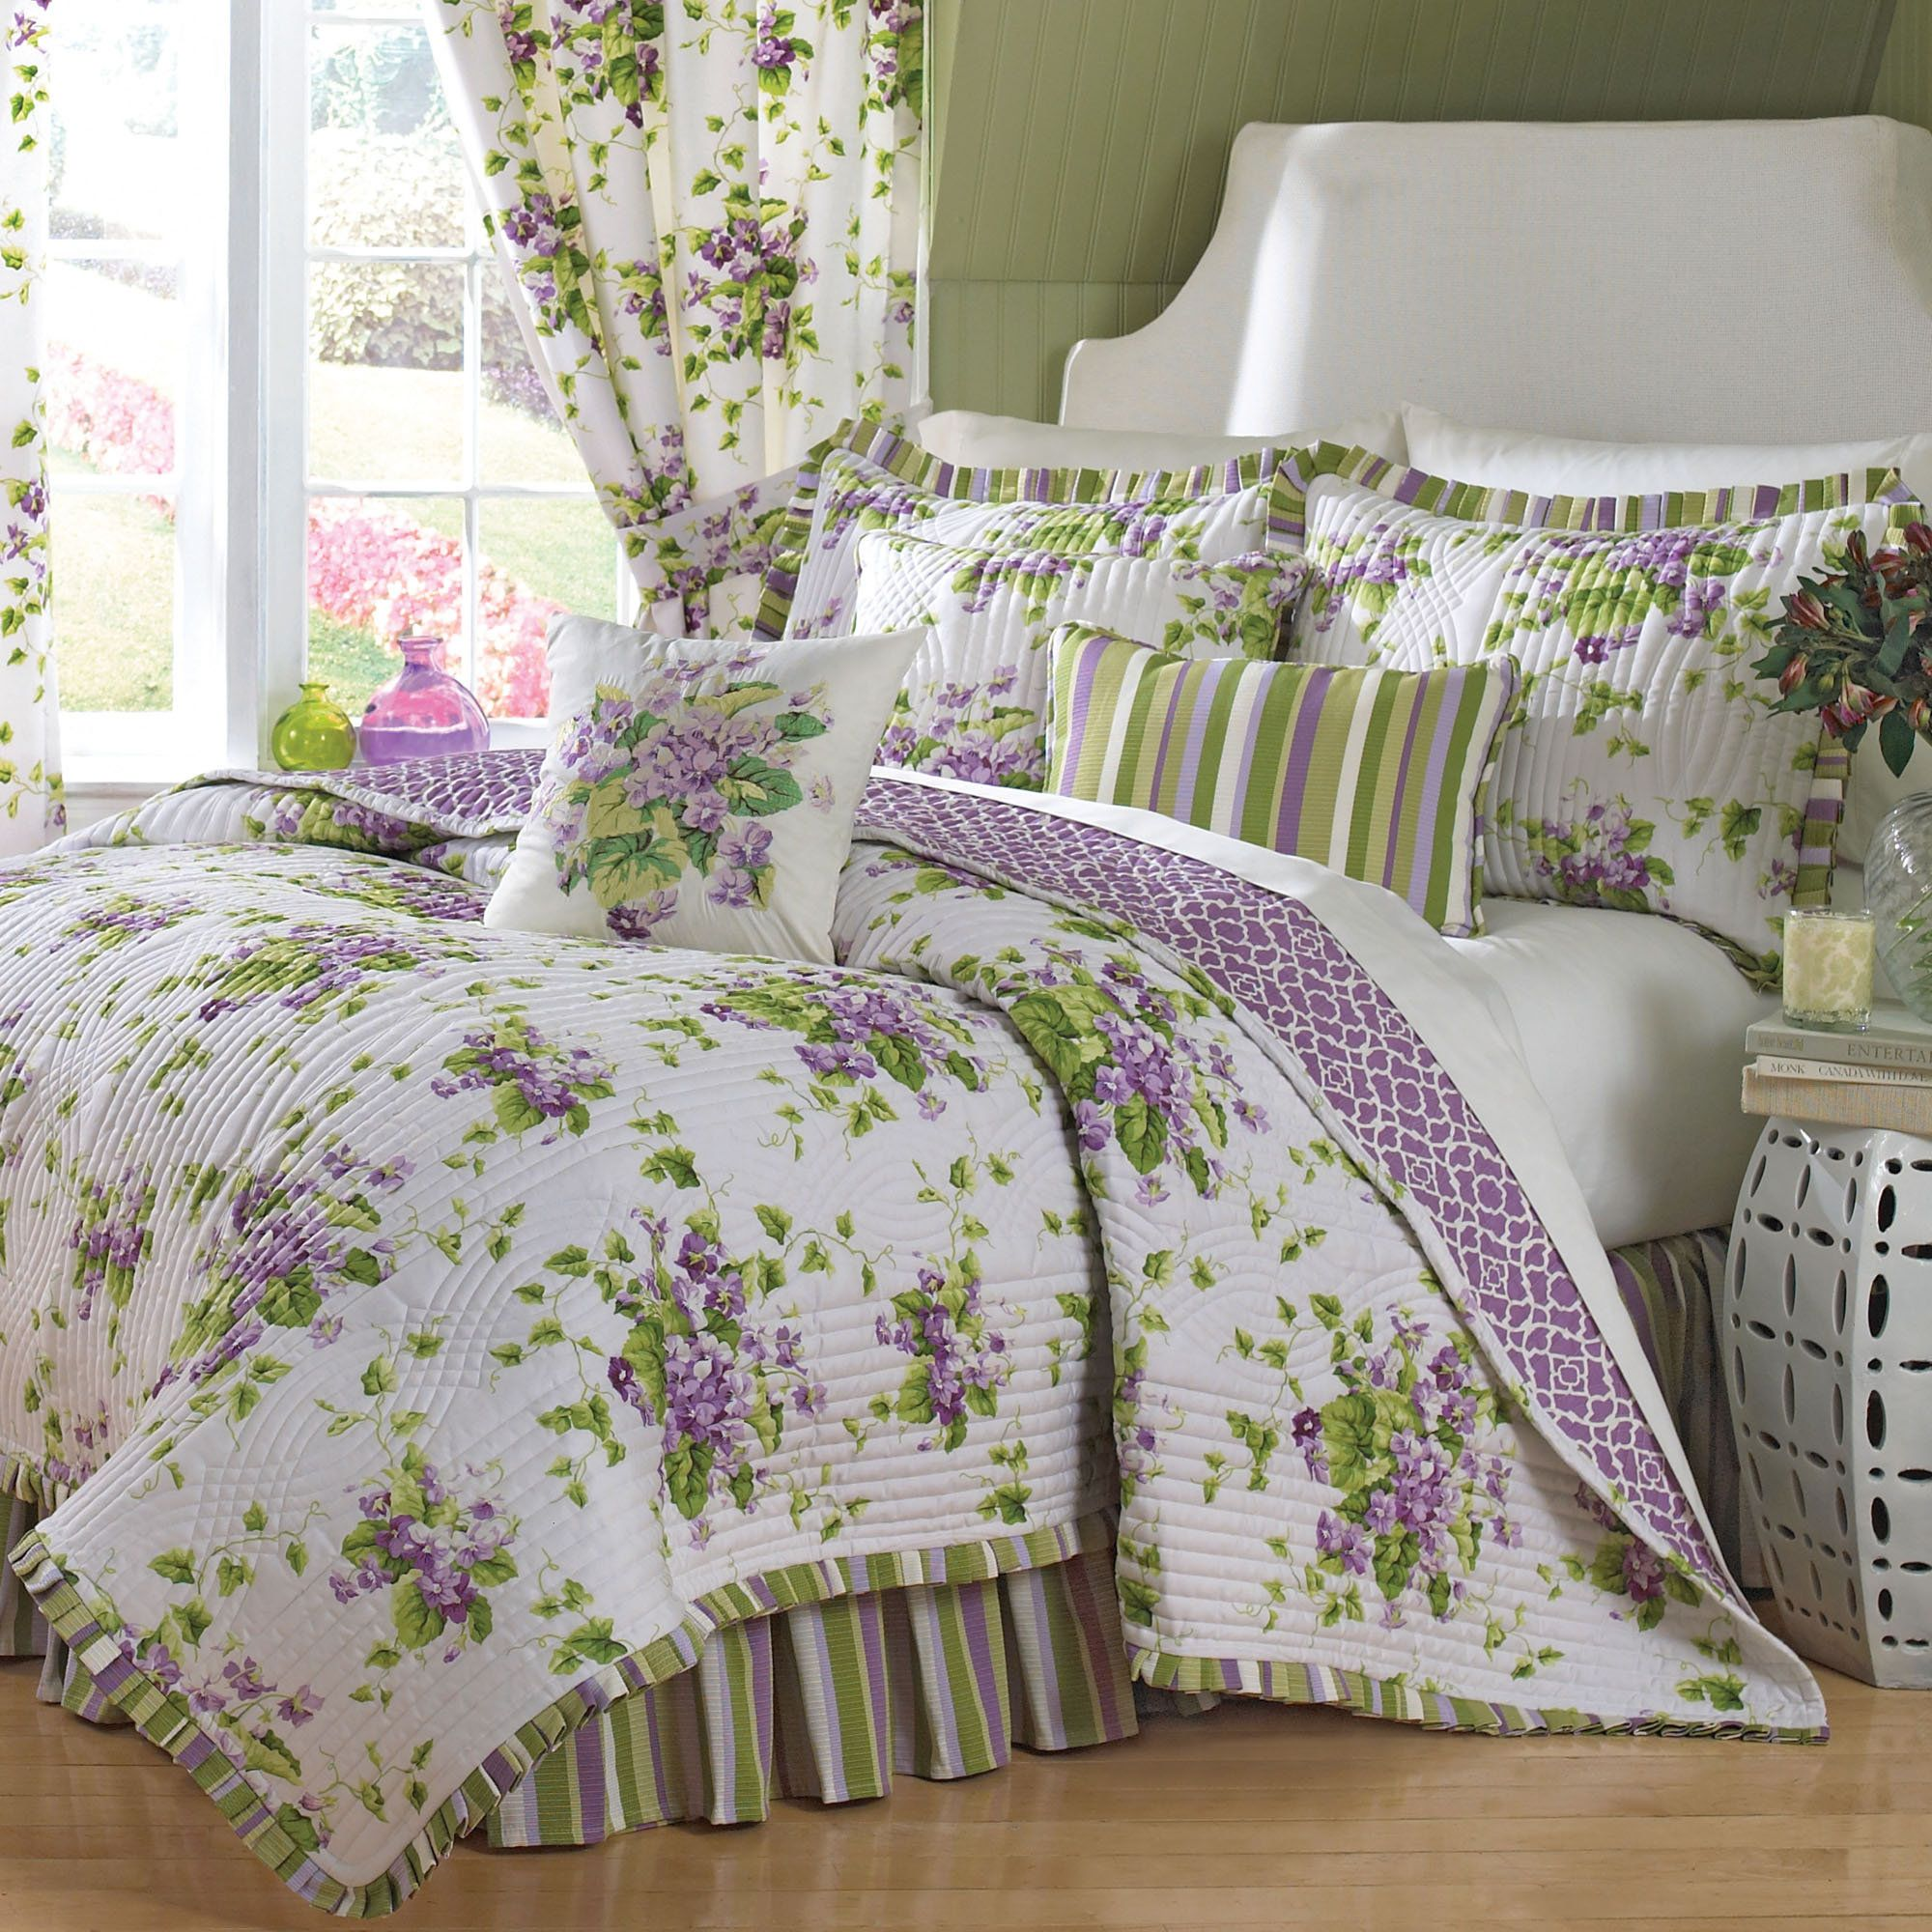 sweet violets floral quilt set bedding by waverly  bedrooms  - sweet violets floral quilt set bedding by waverly